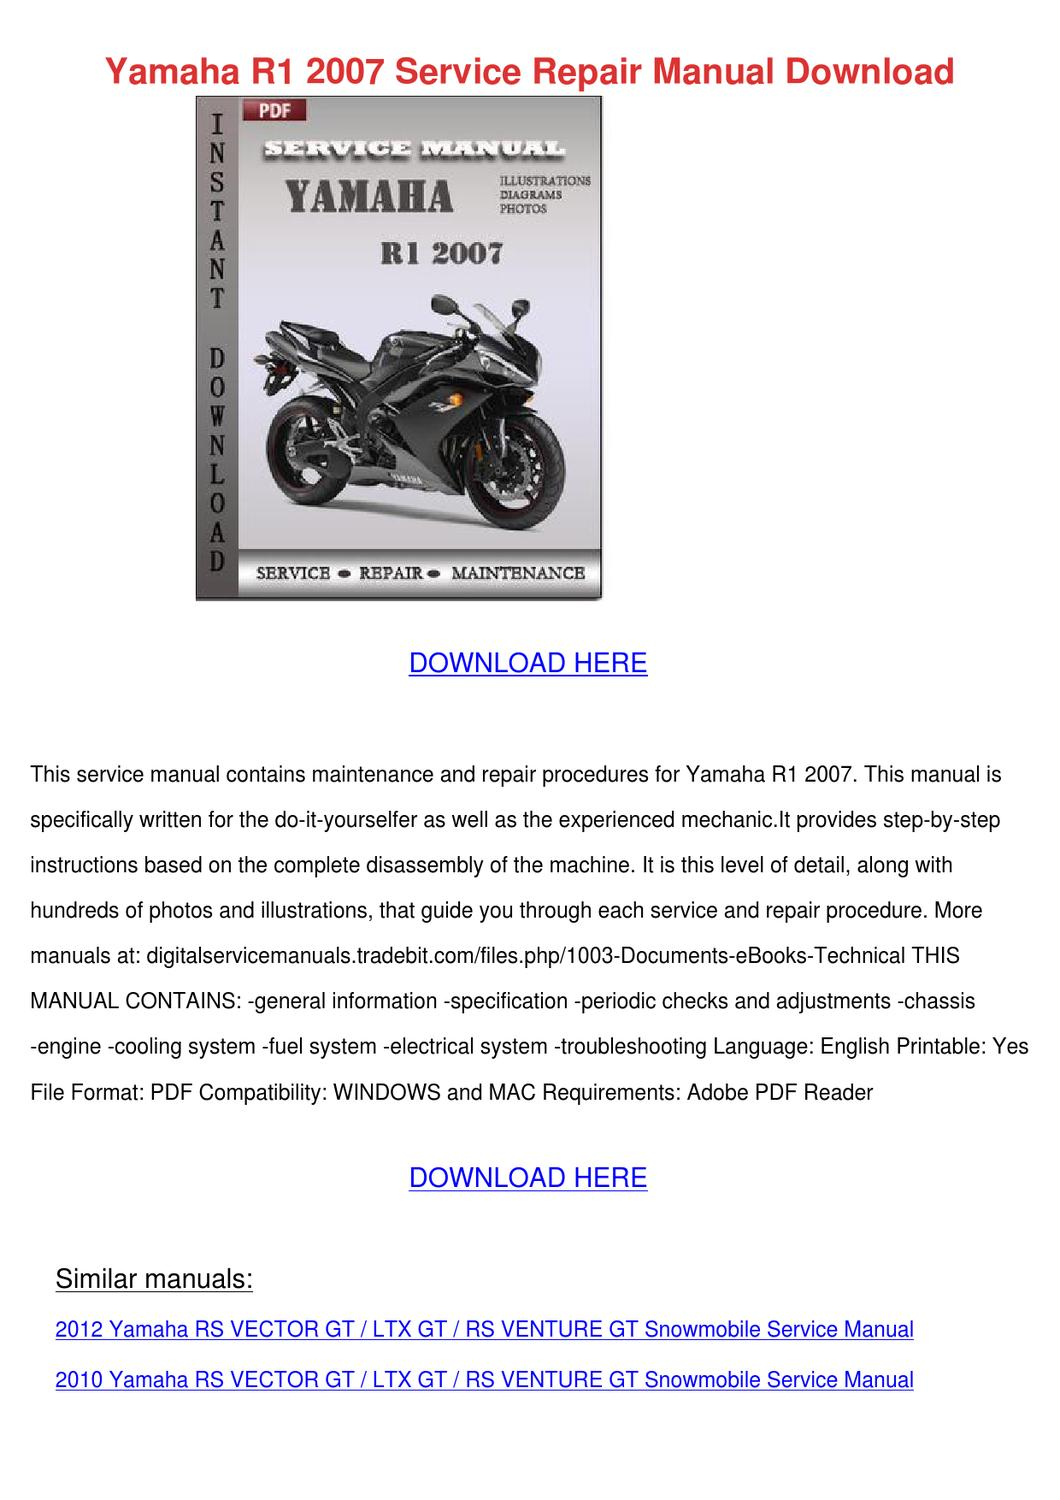 2010 yamaha r6 service manual pdf